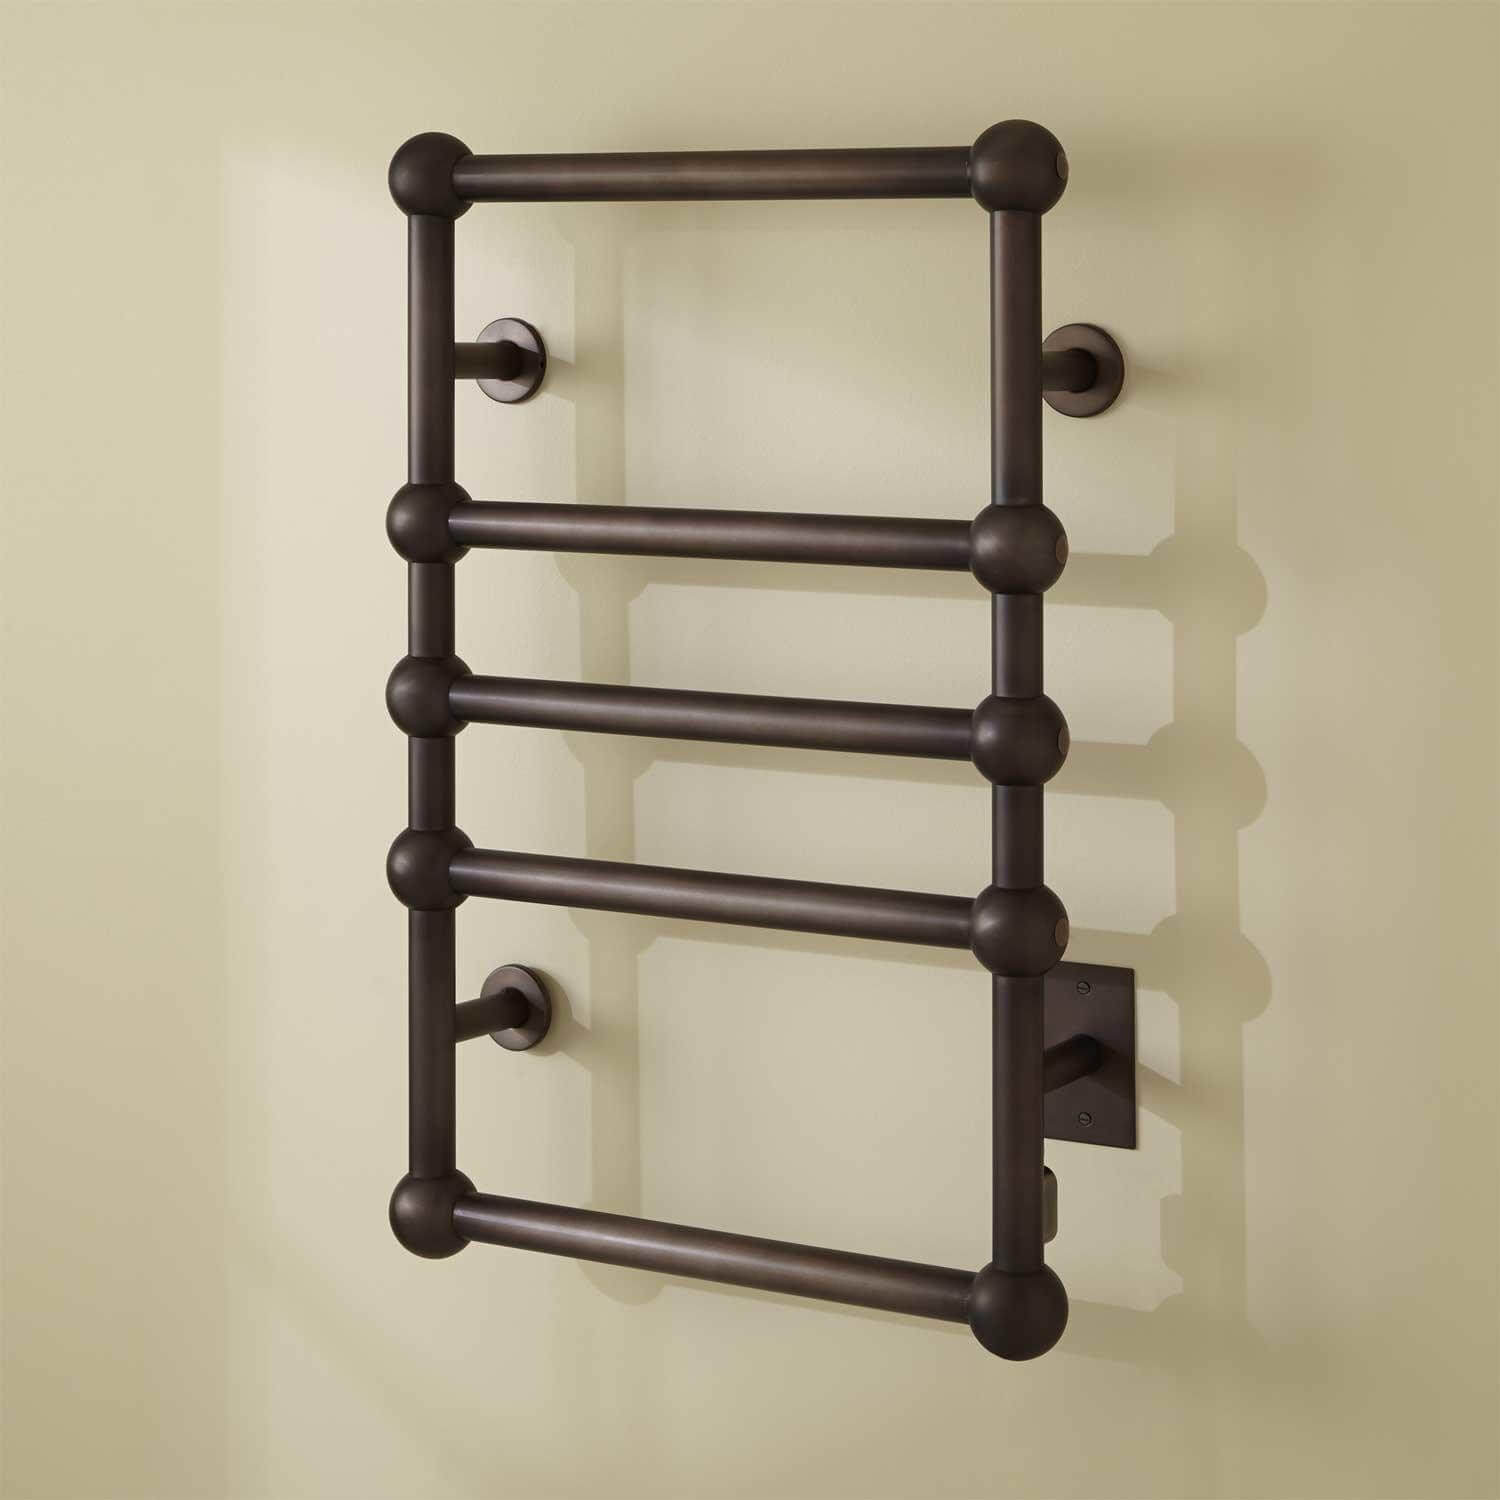 Wall Mount Towel Warmer In Pros And Cons Of Installing Hardwired Towel Warmer